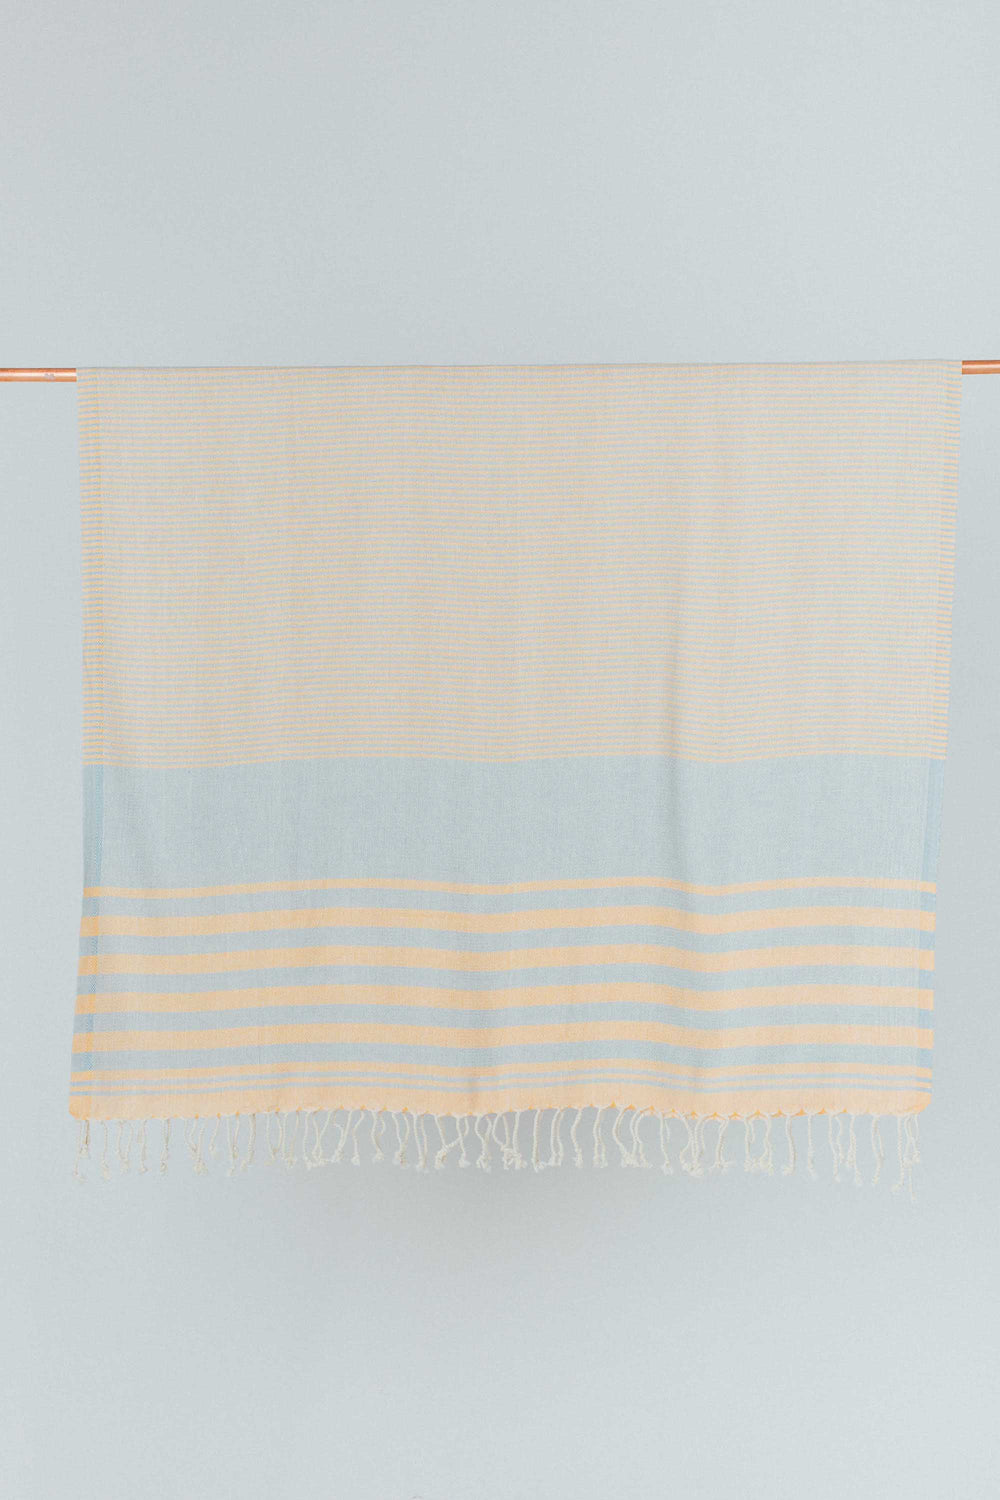 Peach and Blue Organic Cotton Turkish Towel